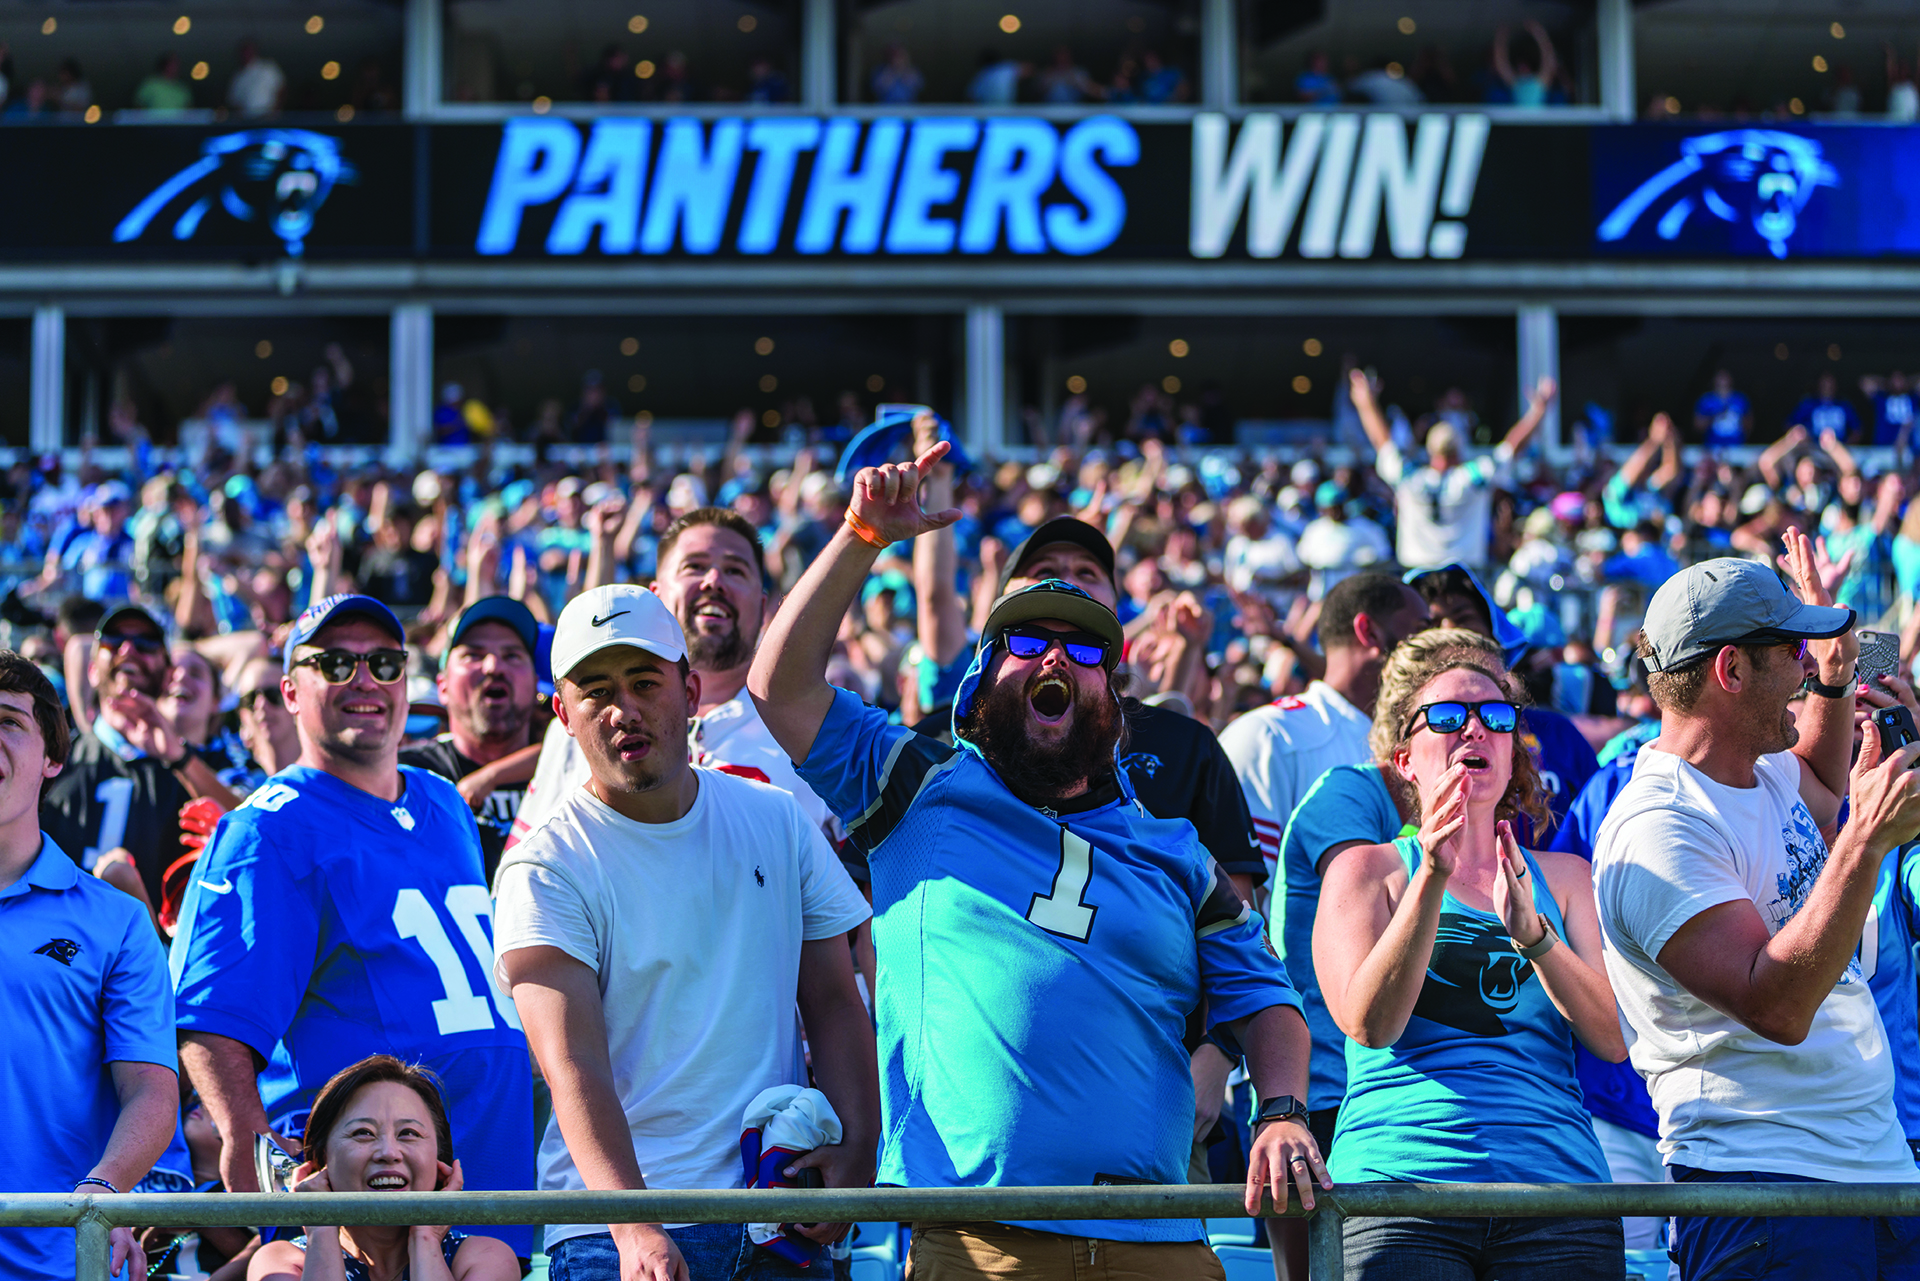 """FanCompass is helping us improve the fan experience, increase fan engagement, and grow our brand and business through creative technology solutions.""   Tom Glick   President, Carolina Panthers"